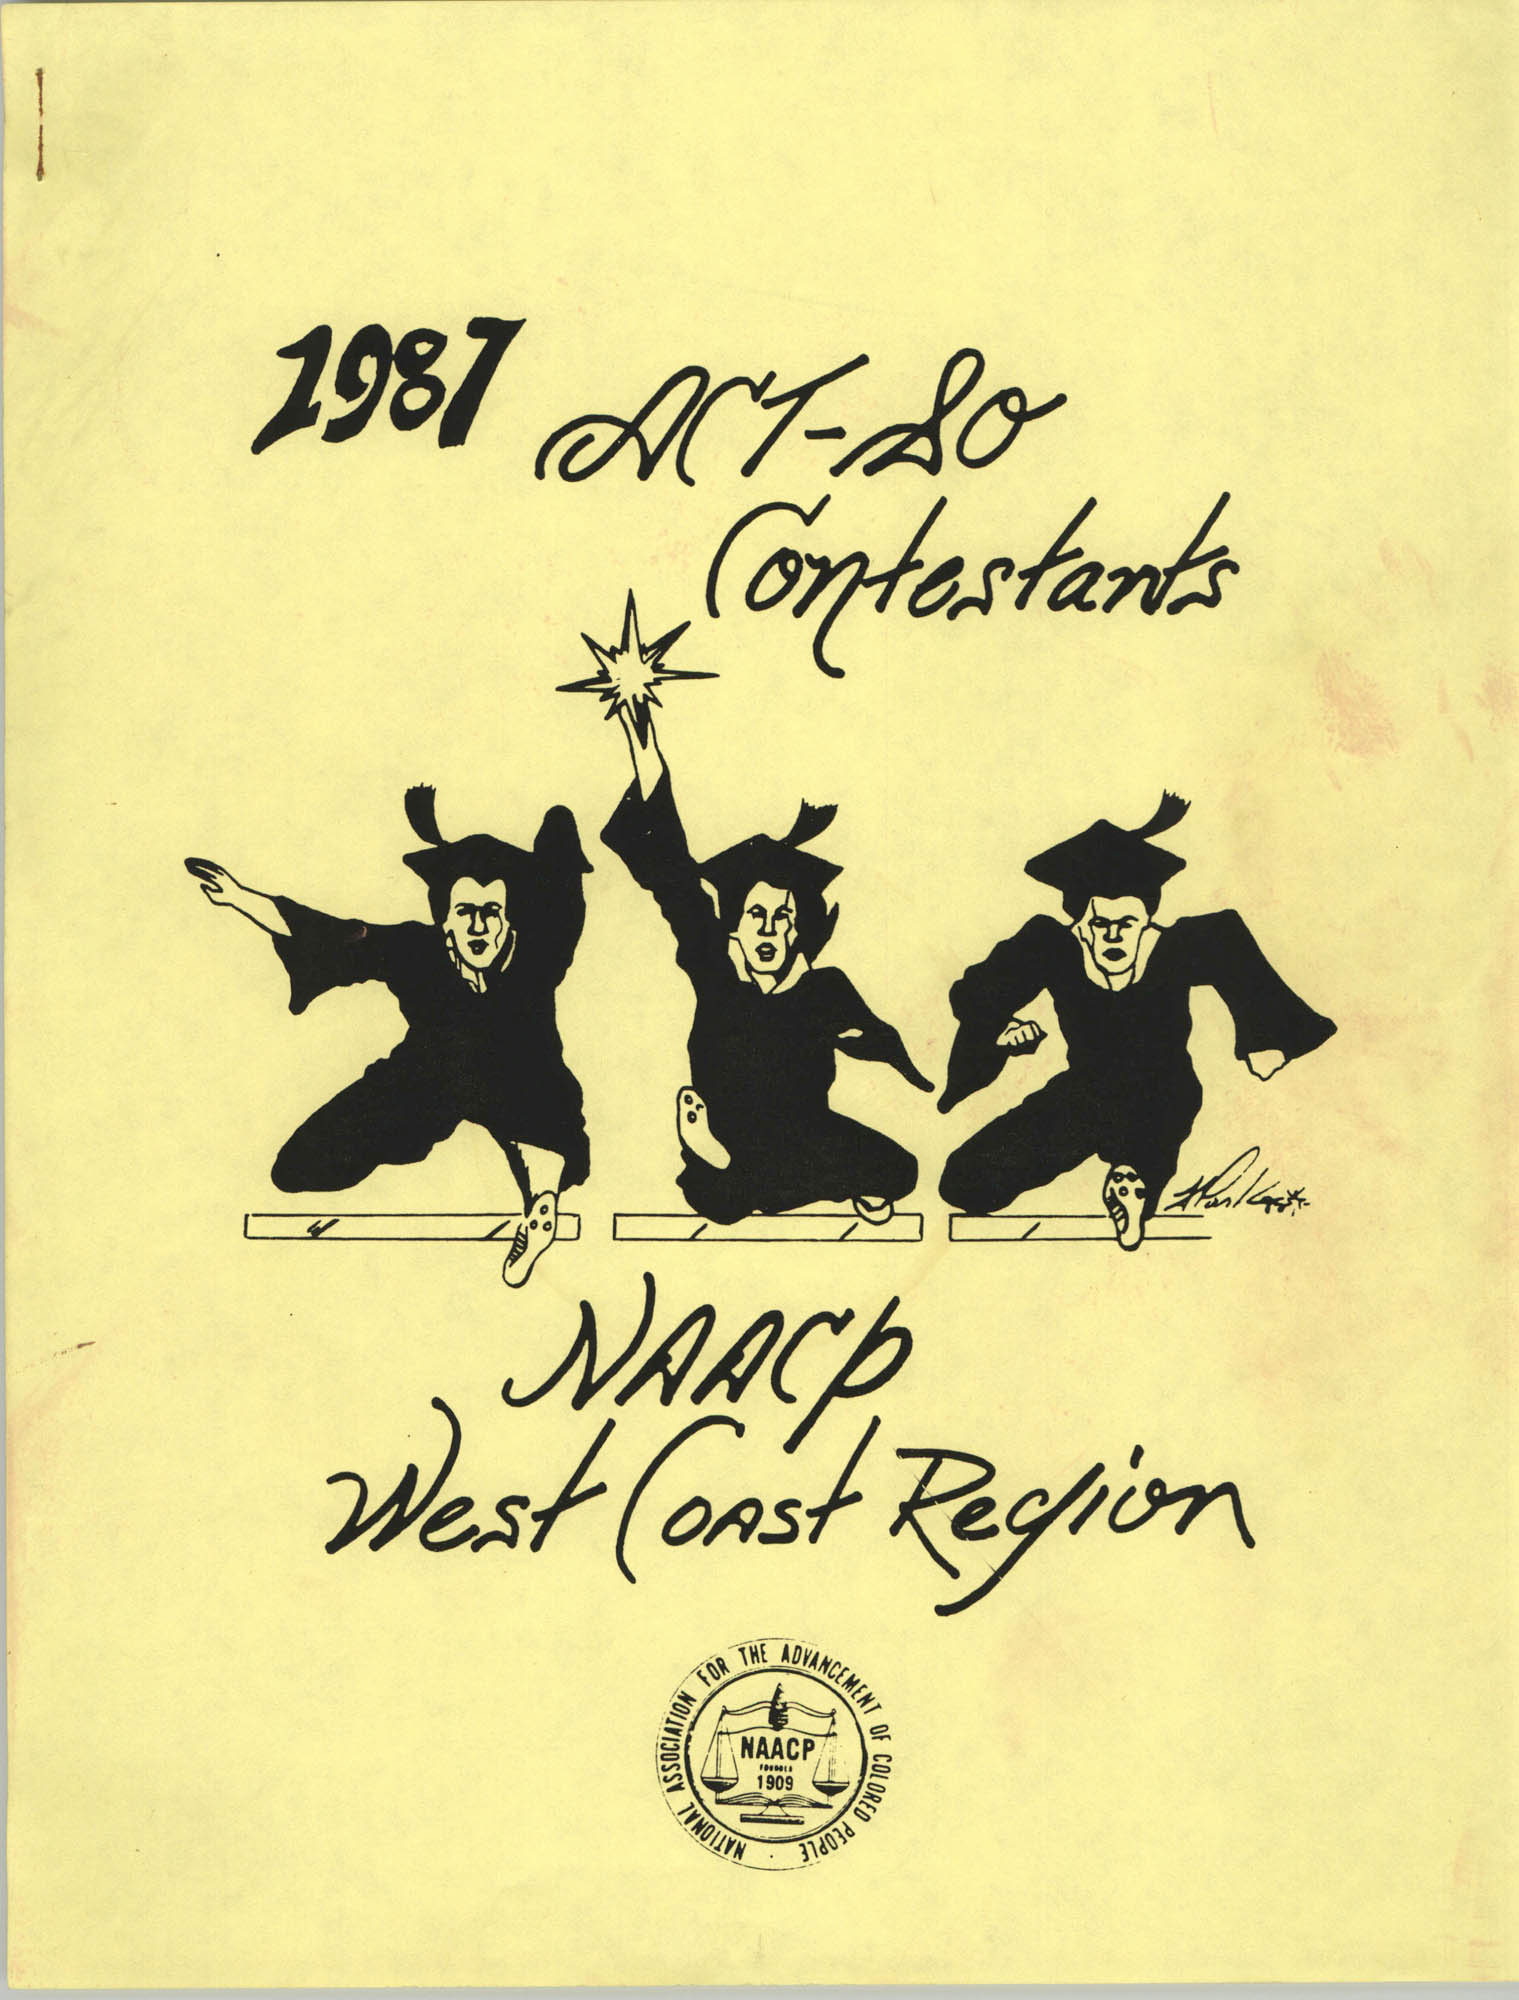 1987 Act-So Contestants, NAACP West Coast Region, Cover